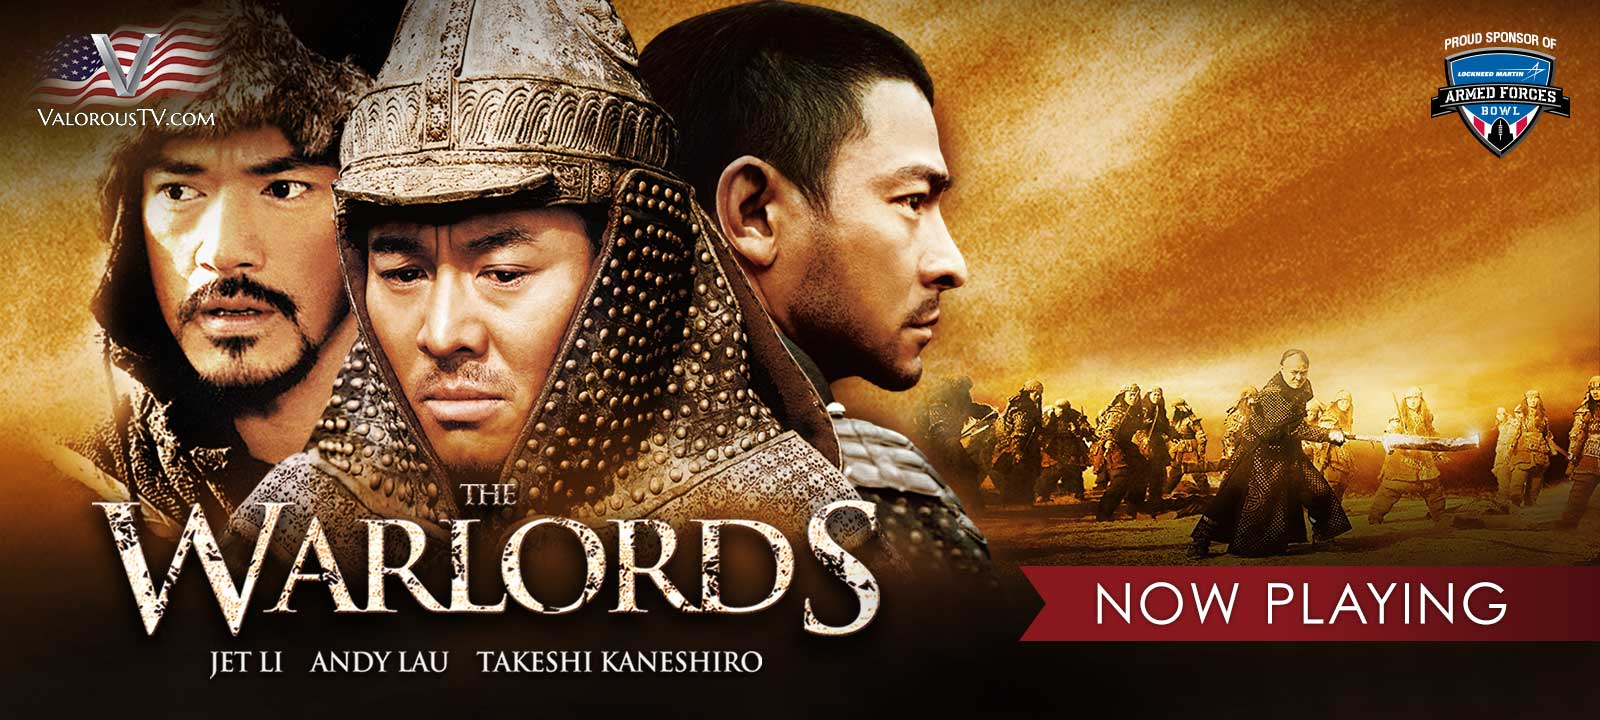 The Warlords movie